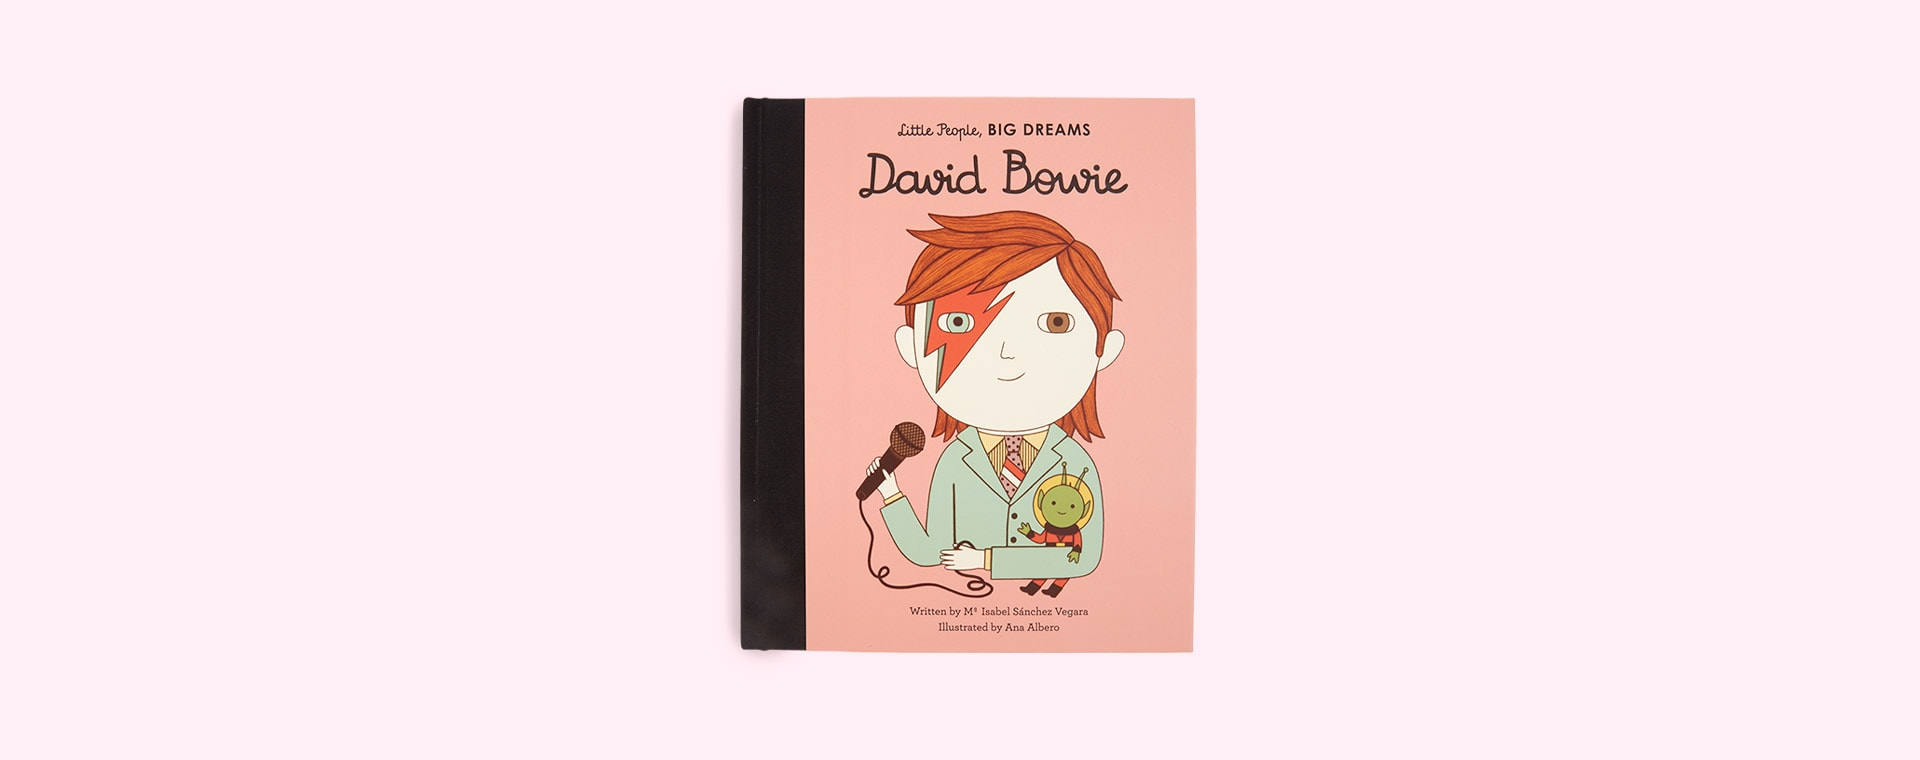 Pink bookspeed Little People Big Dreams David Bowie